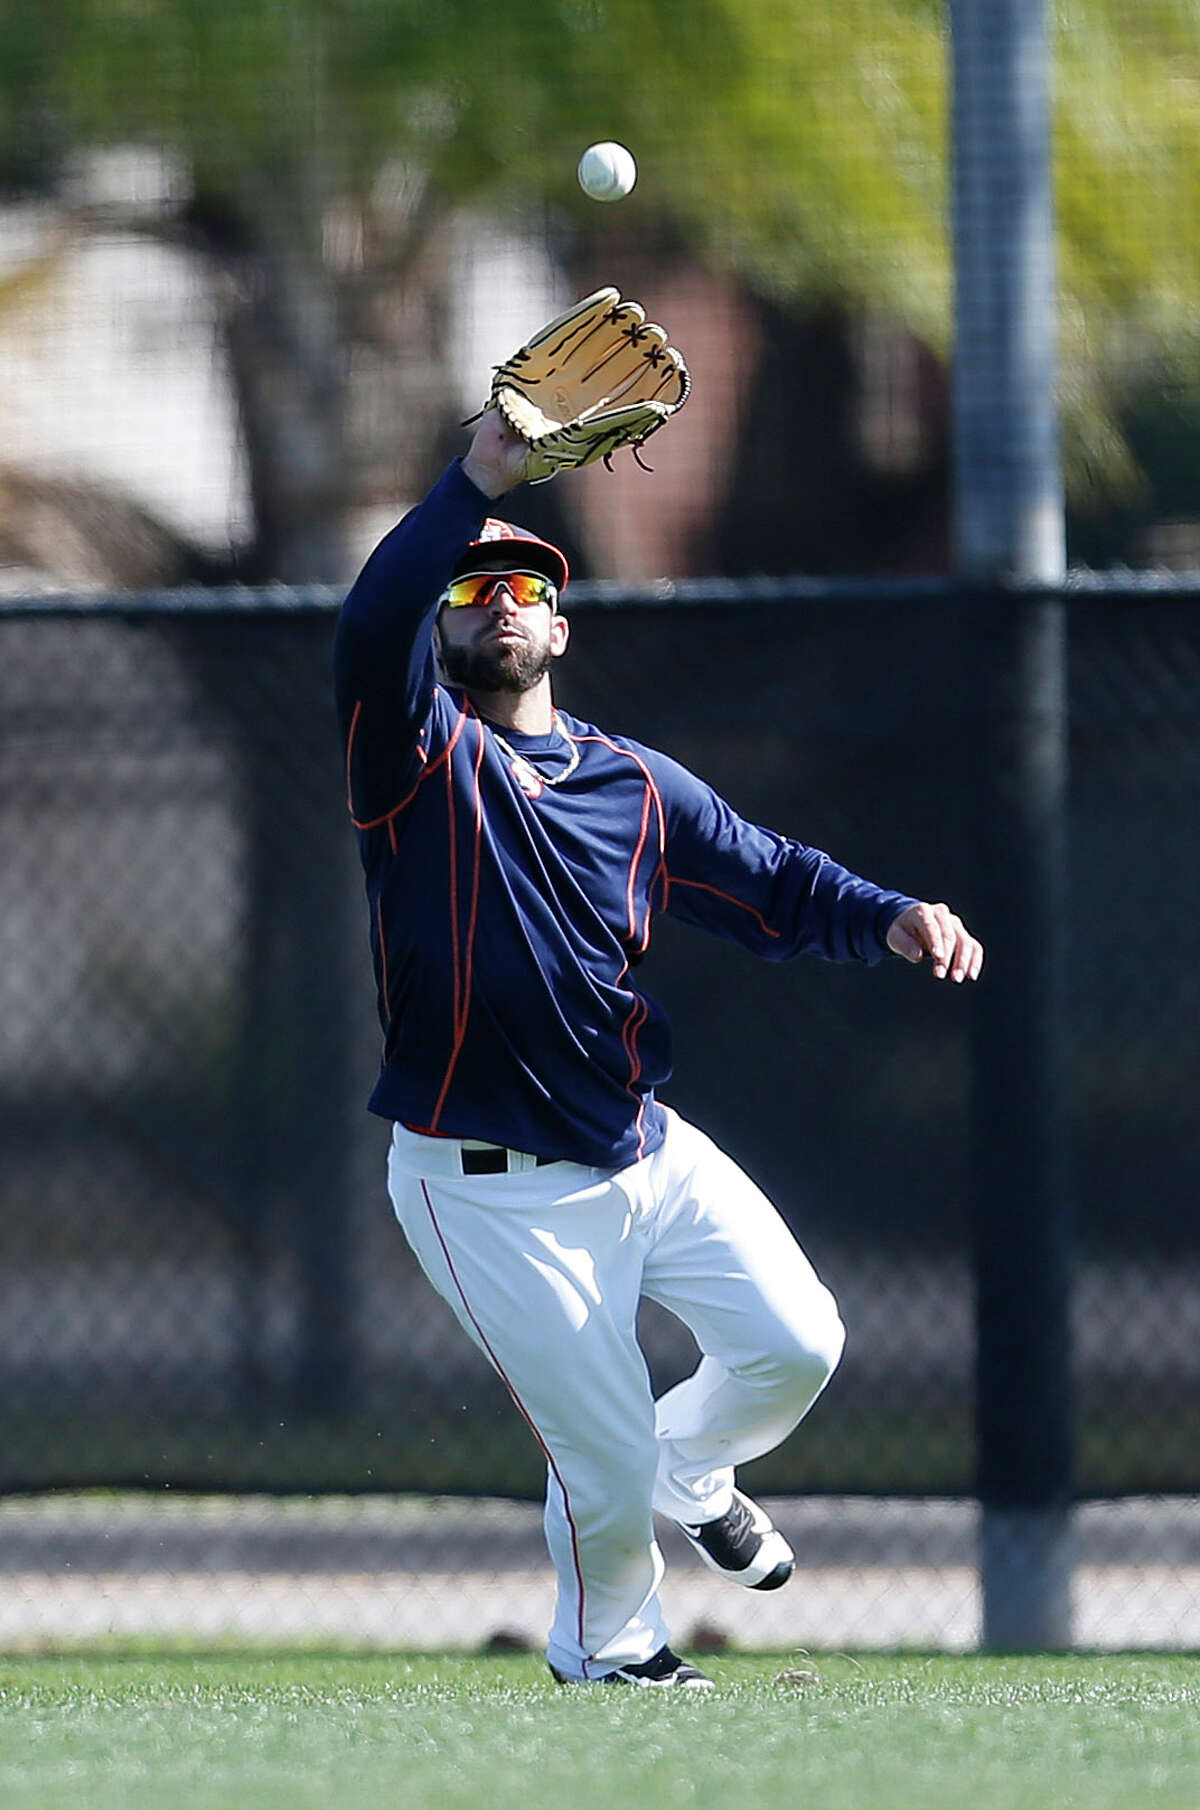 Houston Astros outfielder Andrew Aplin catches a fly ball at the Astros spring training in Kissimmee, Florida, Thursday, Feb. 25, 2016.